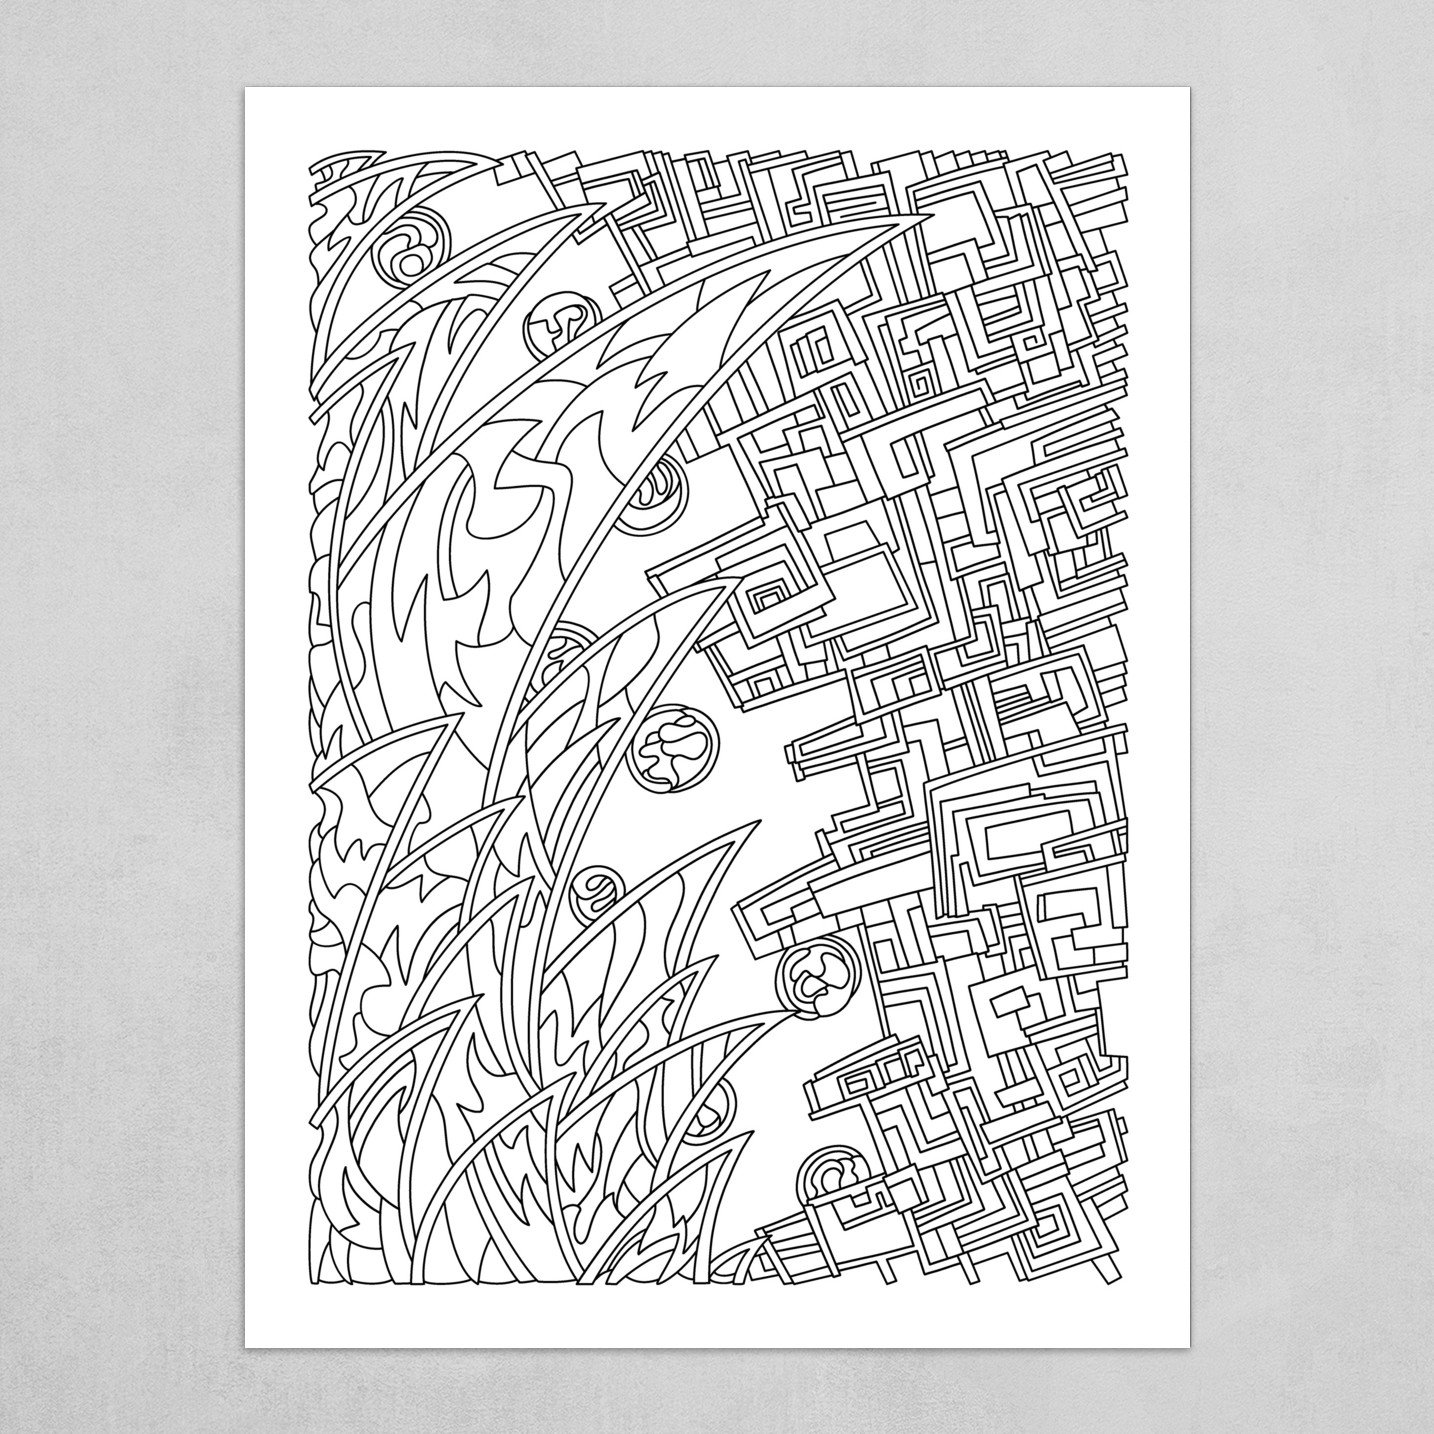 Wandering Abstract Line Art 18: Black & White